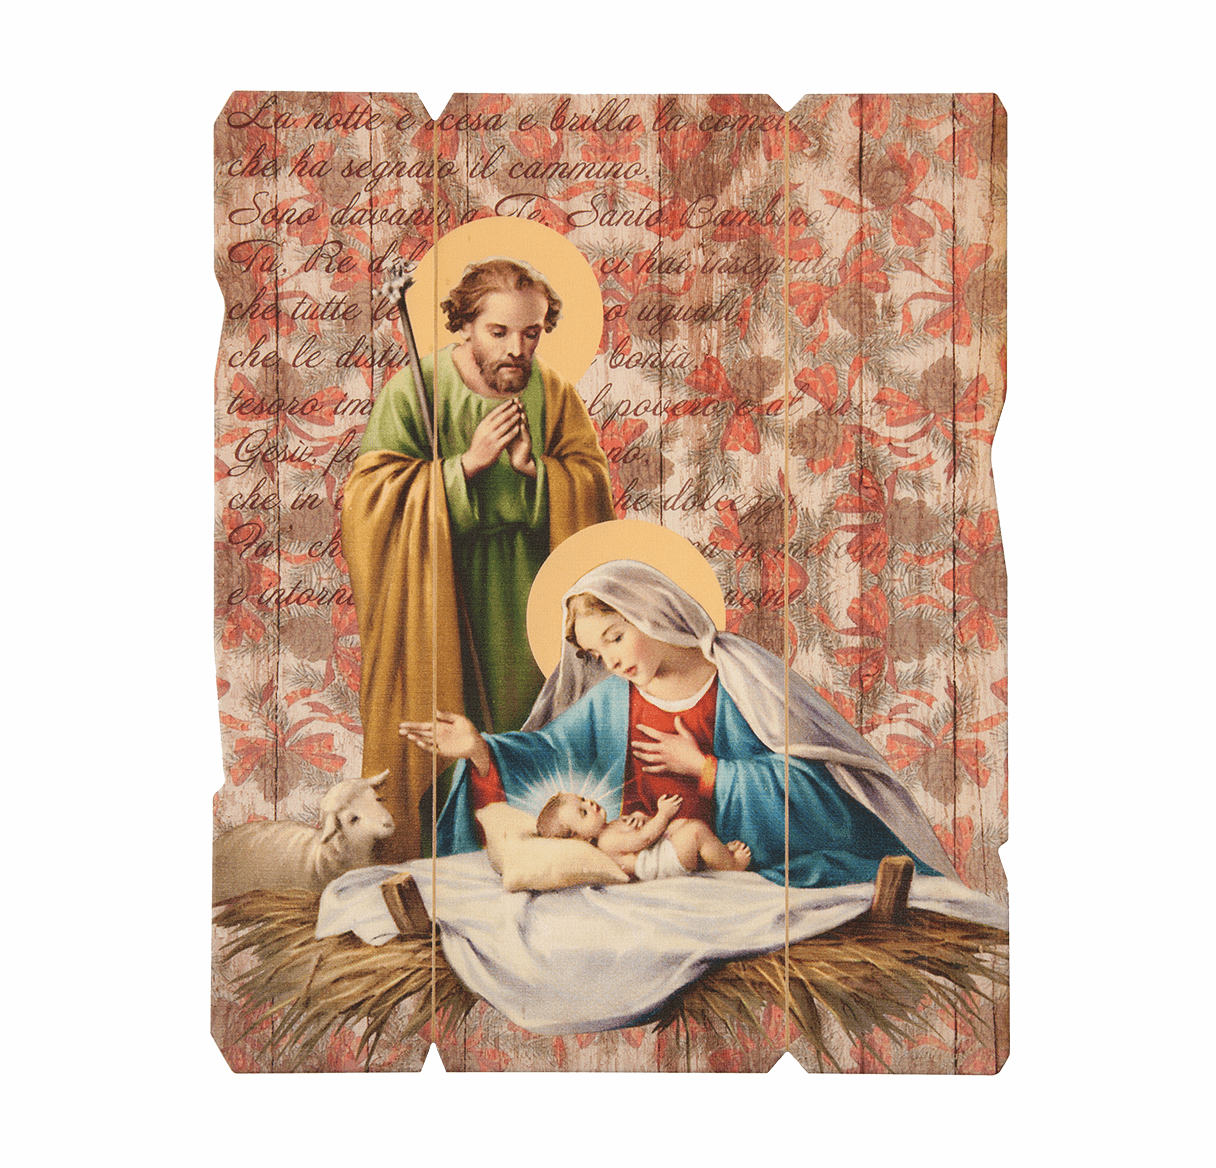 Hirten Christmas Holy Family Nativity Vintage Wall Plaque